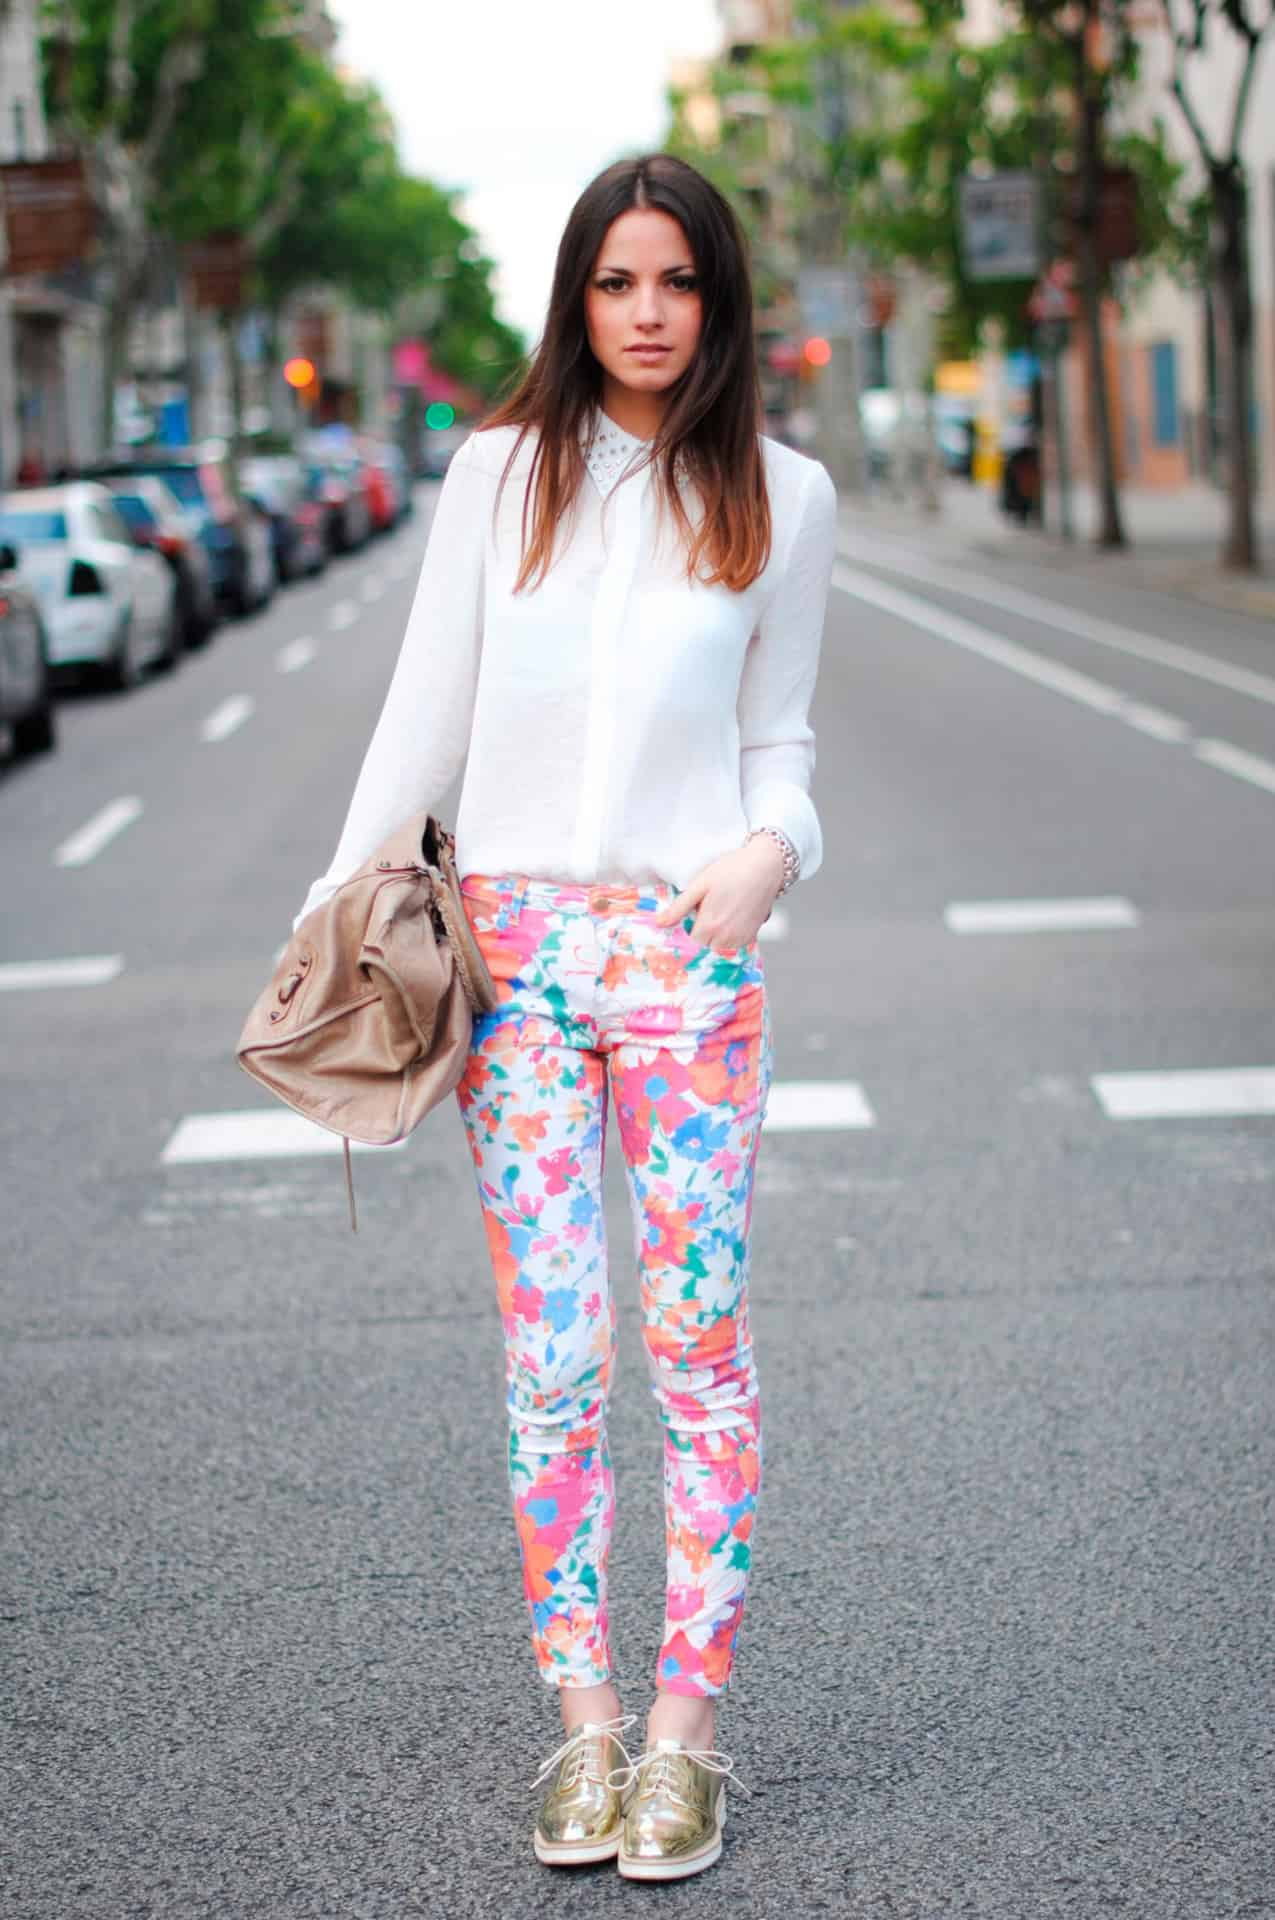 It is a great time to update your wardrobe too, and for a fresh, new look, why not buy printed pants? These pants, which you can shop for new and used on eBay, come in .